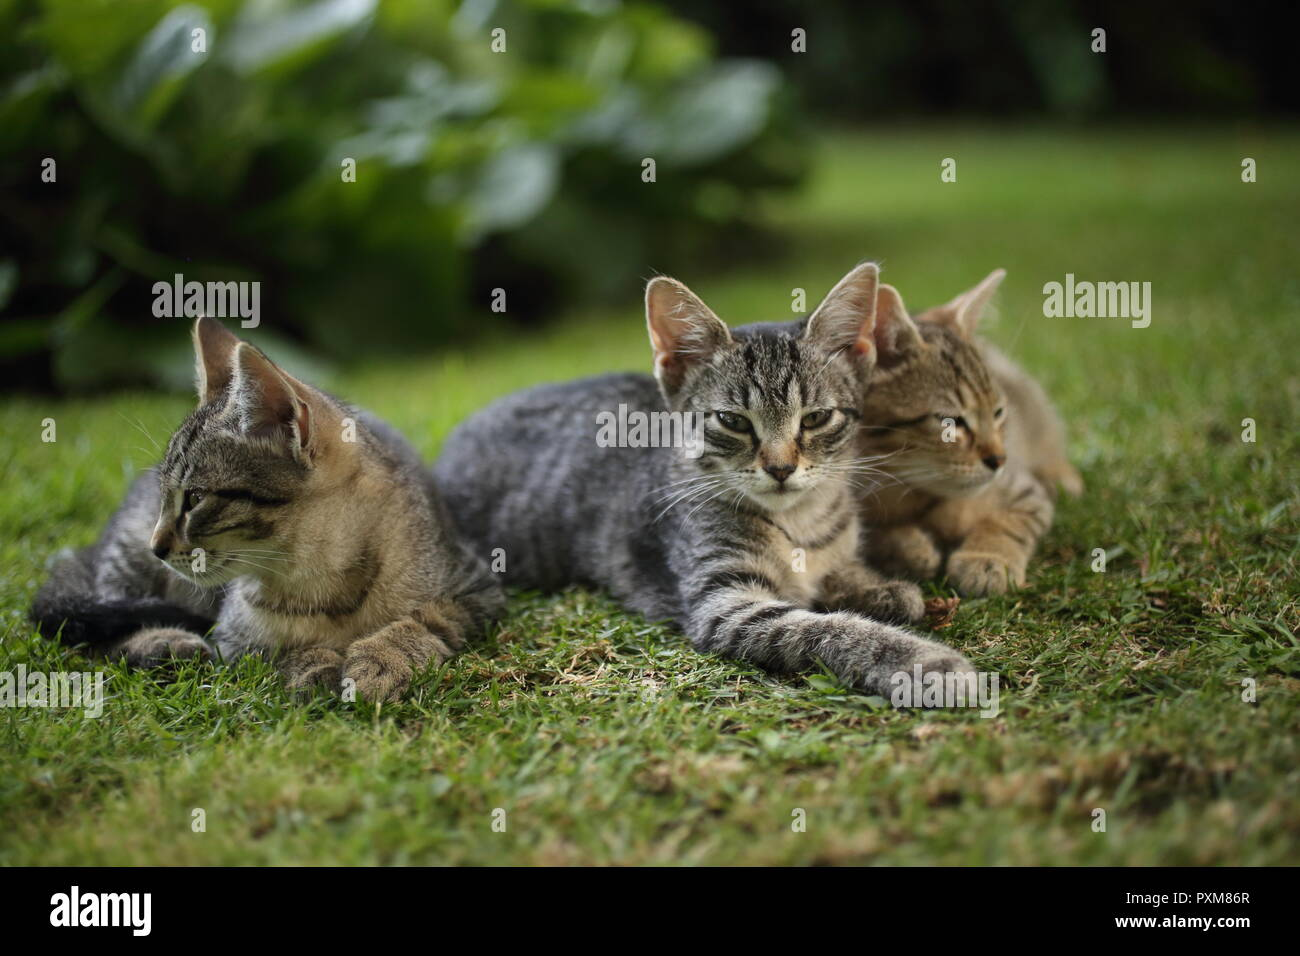 Group of little playing kittens in the grass - Stock Image